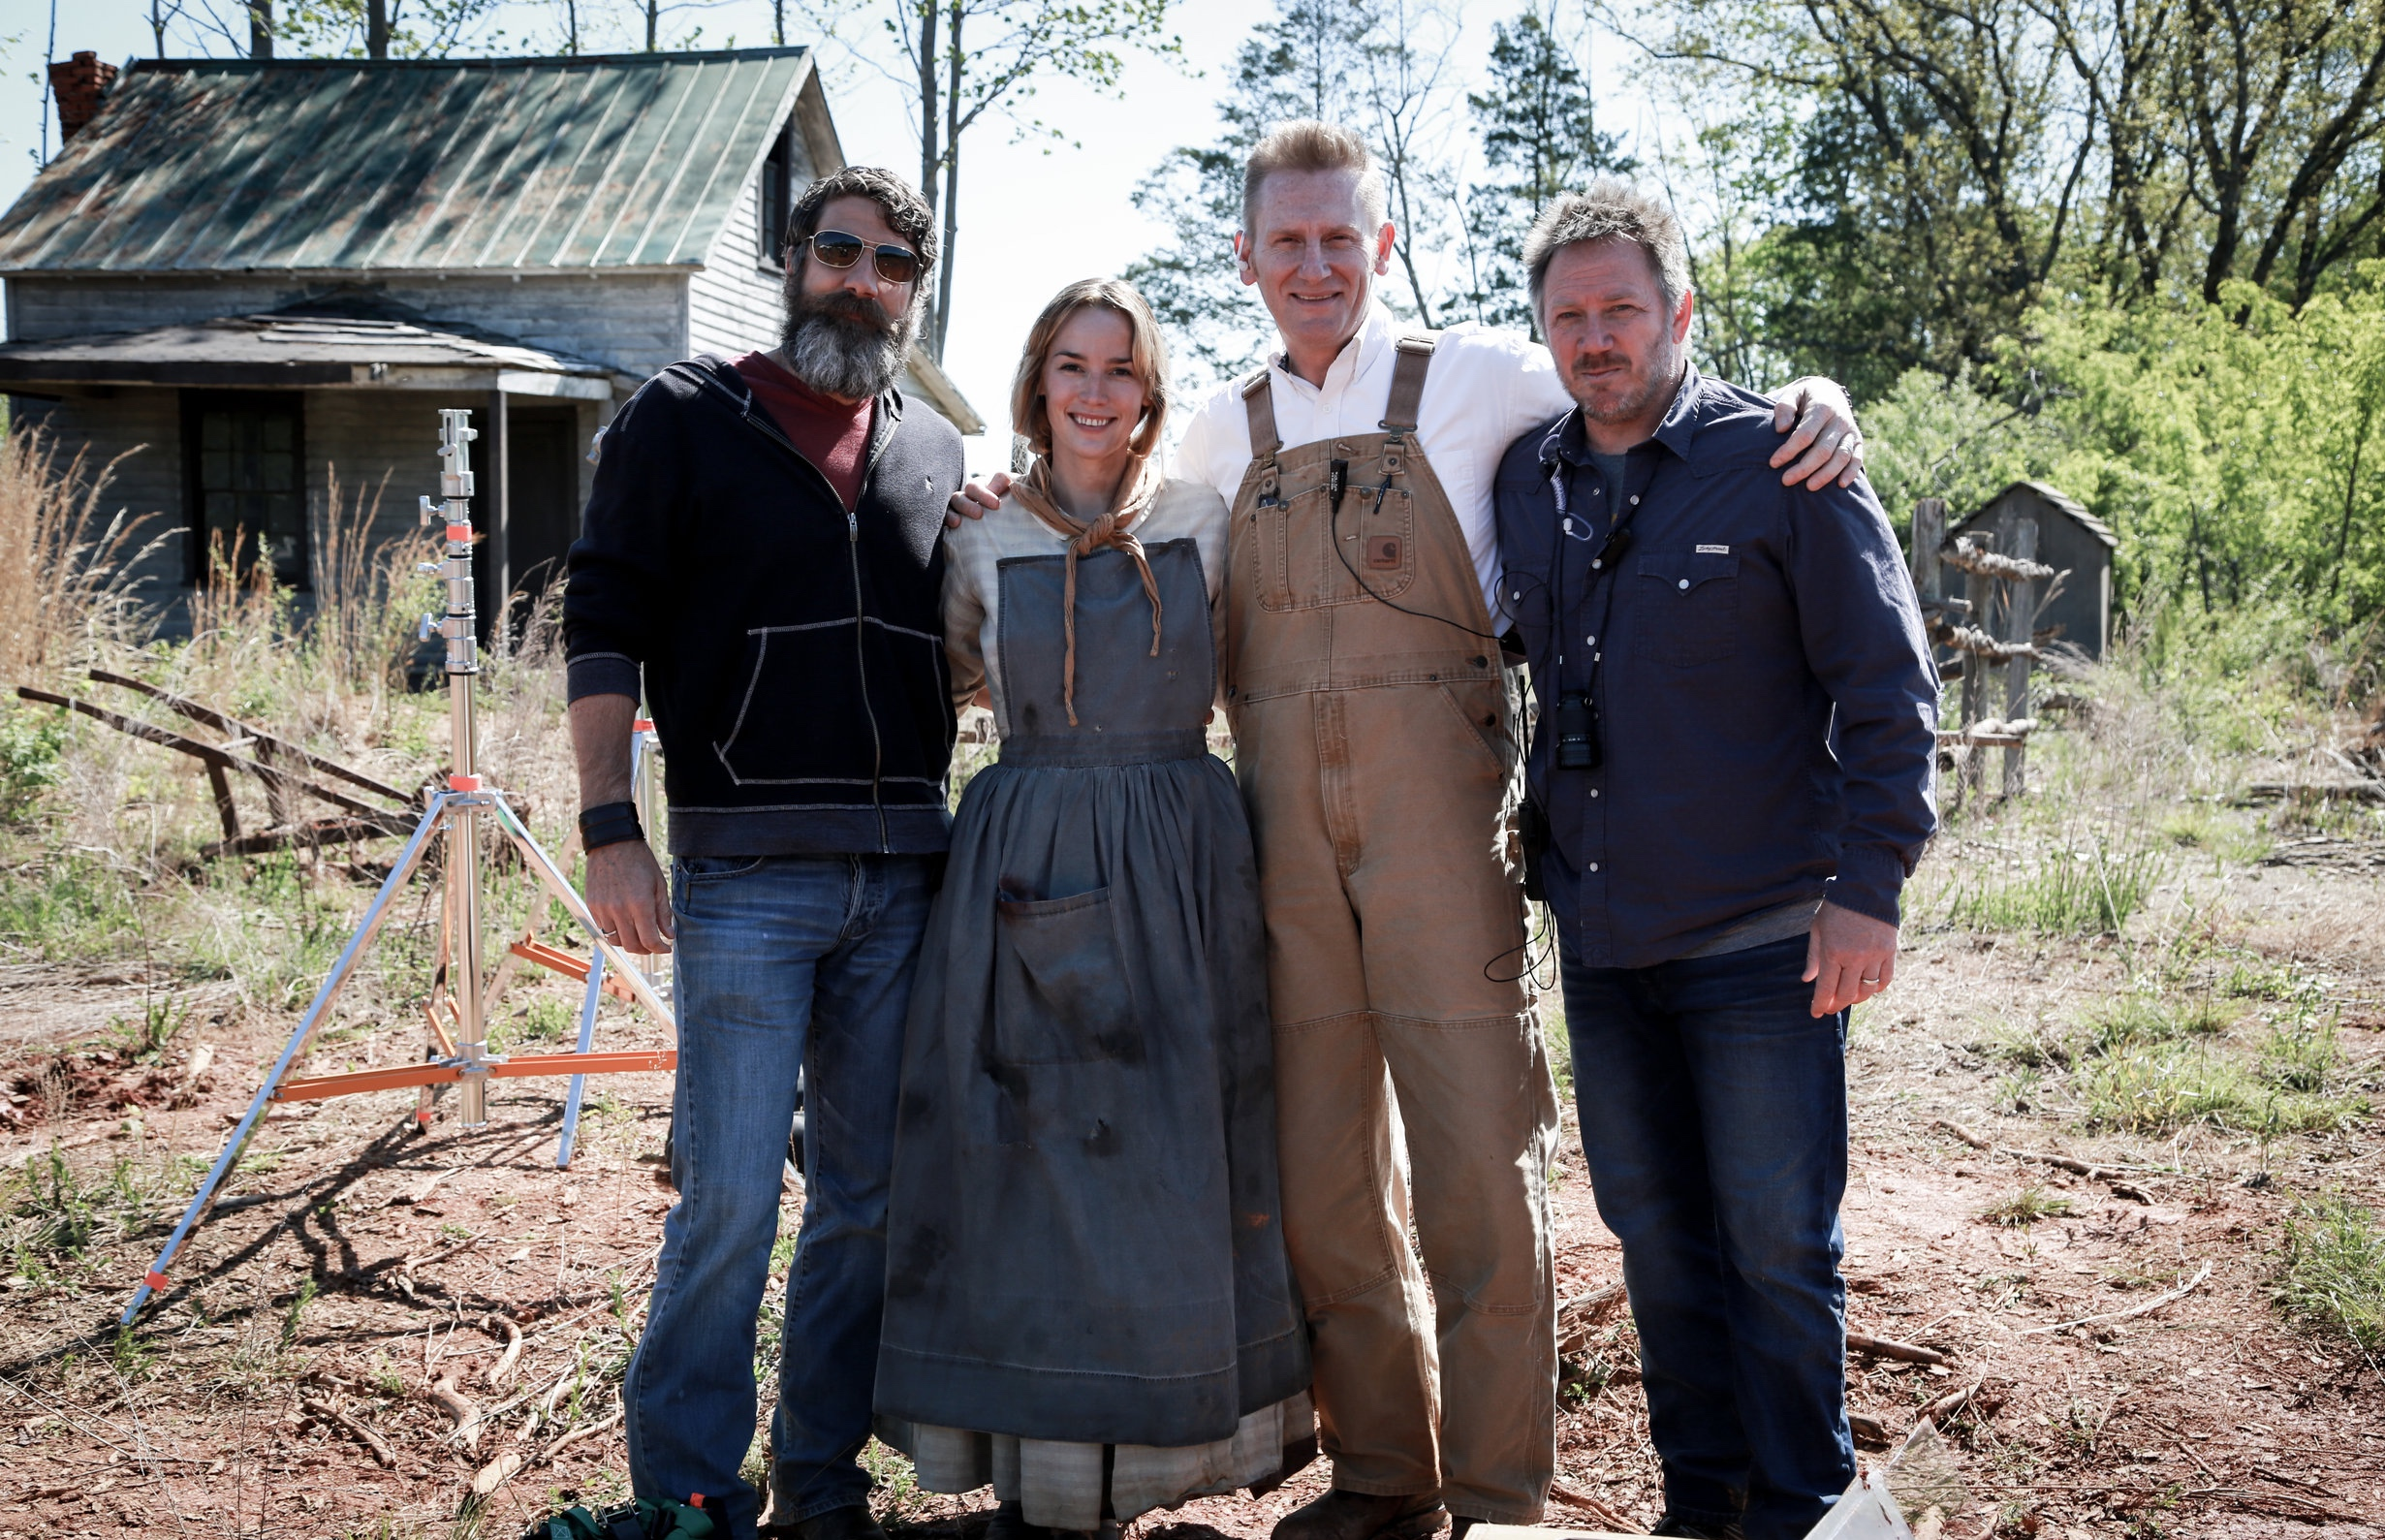 April 26, 2015… our first day of filming in Virginia. (from left to right, Aaron Carnahan, Alice Coulthard, me and Bryan Allen.)